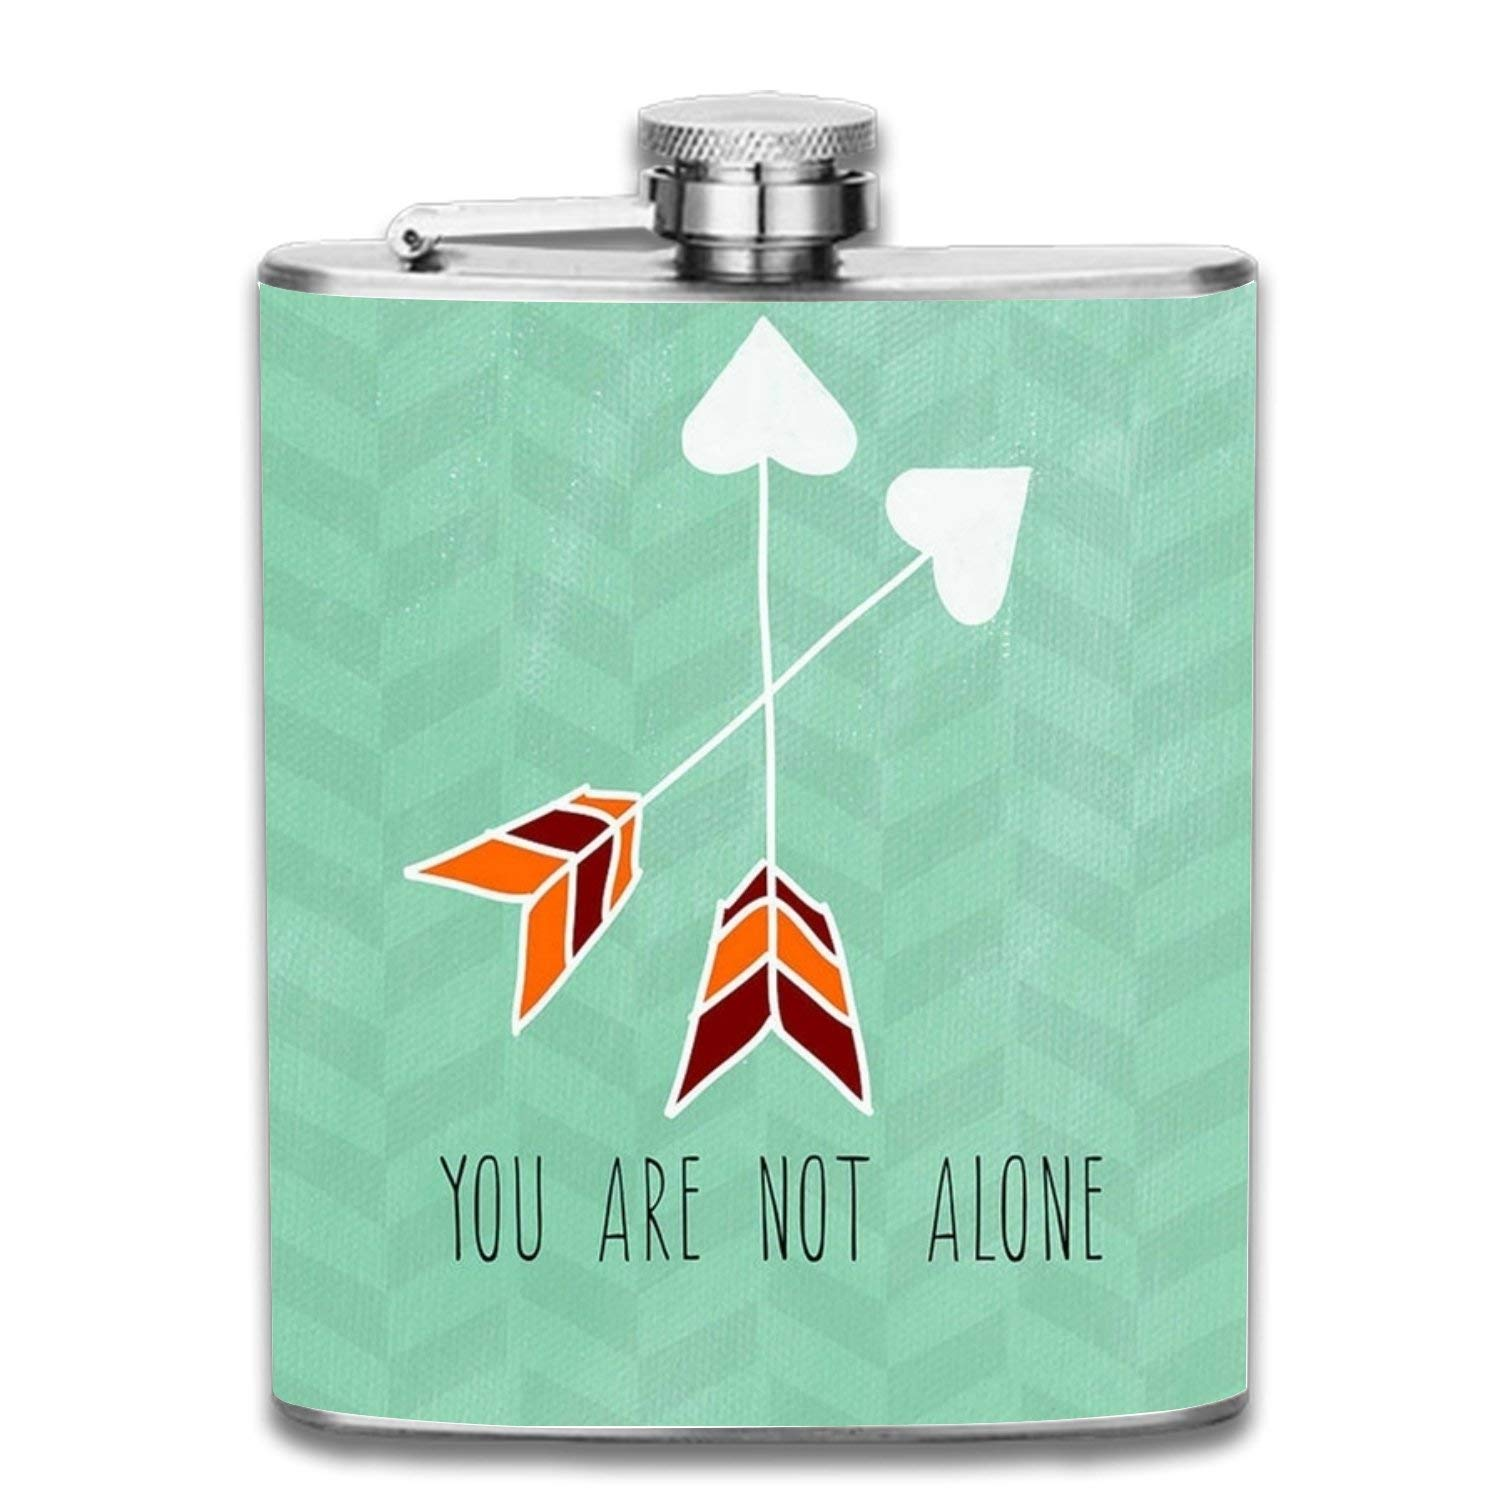 Wdskbg Flowers and Butterflies Portable 7oz Stainless Steel Hip Flask Alcohol Flagon Unisex8